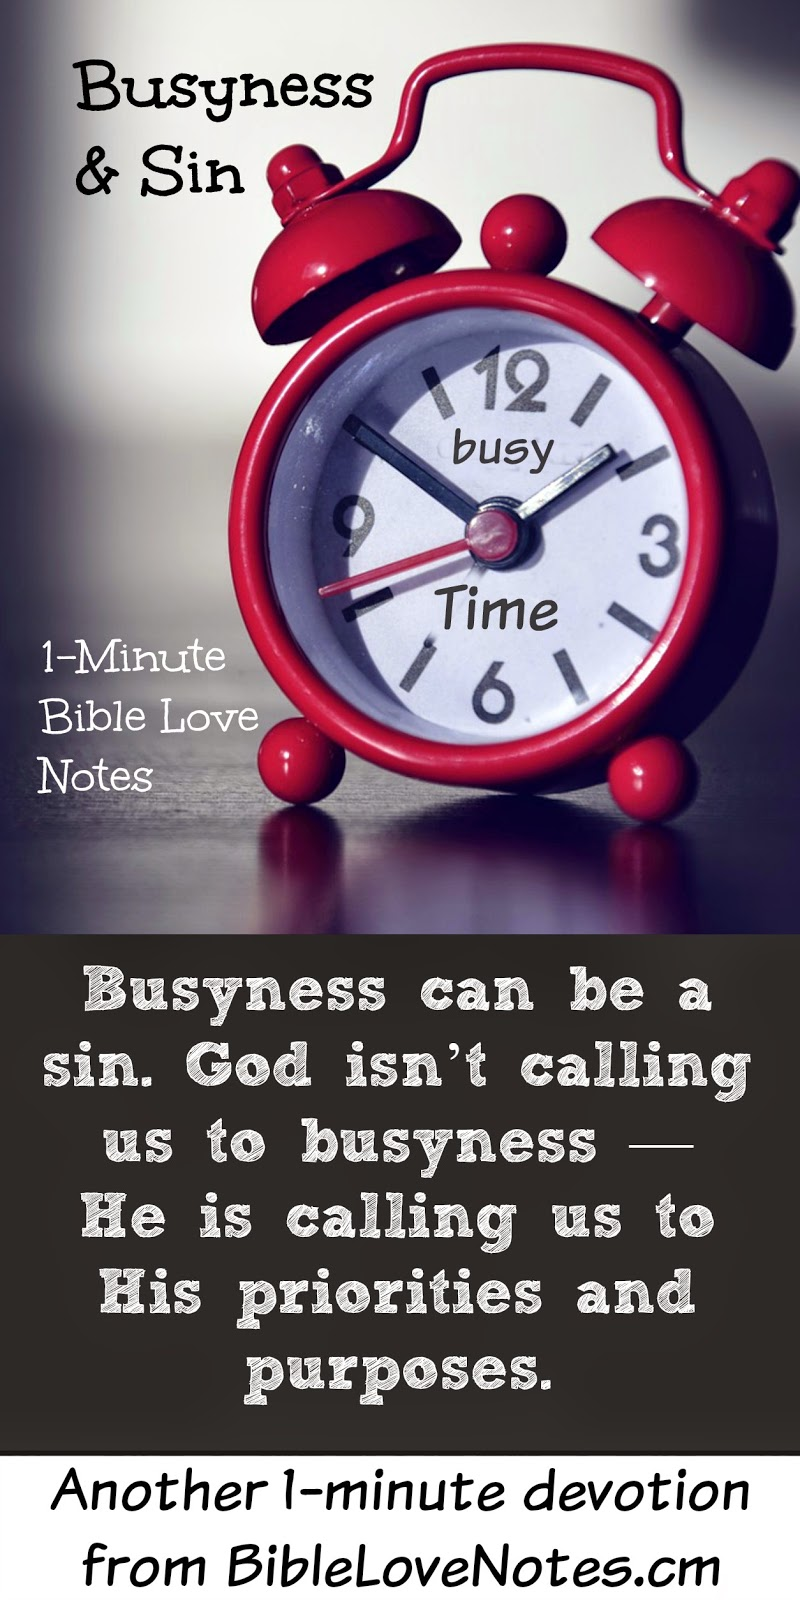 When busyness becomes sin, being too busy